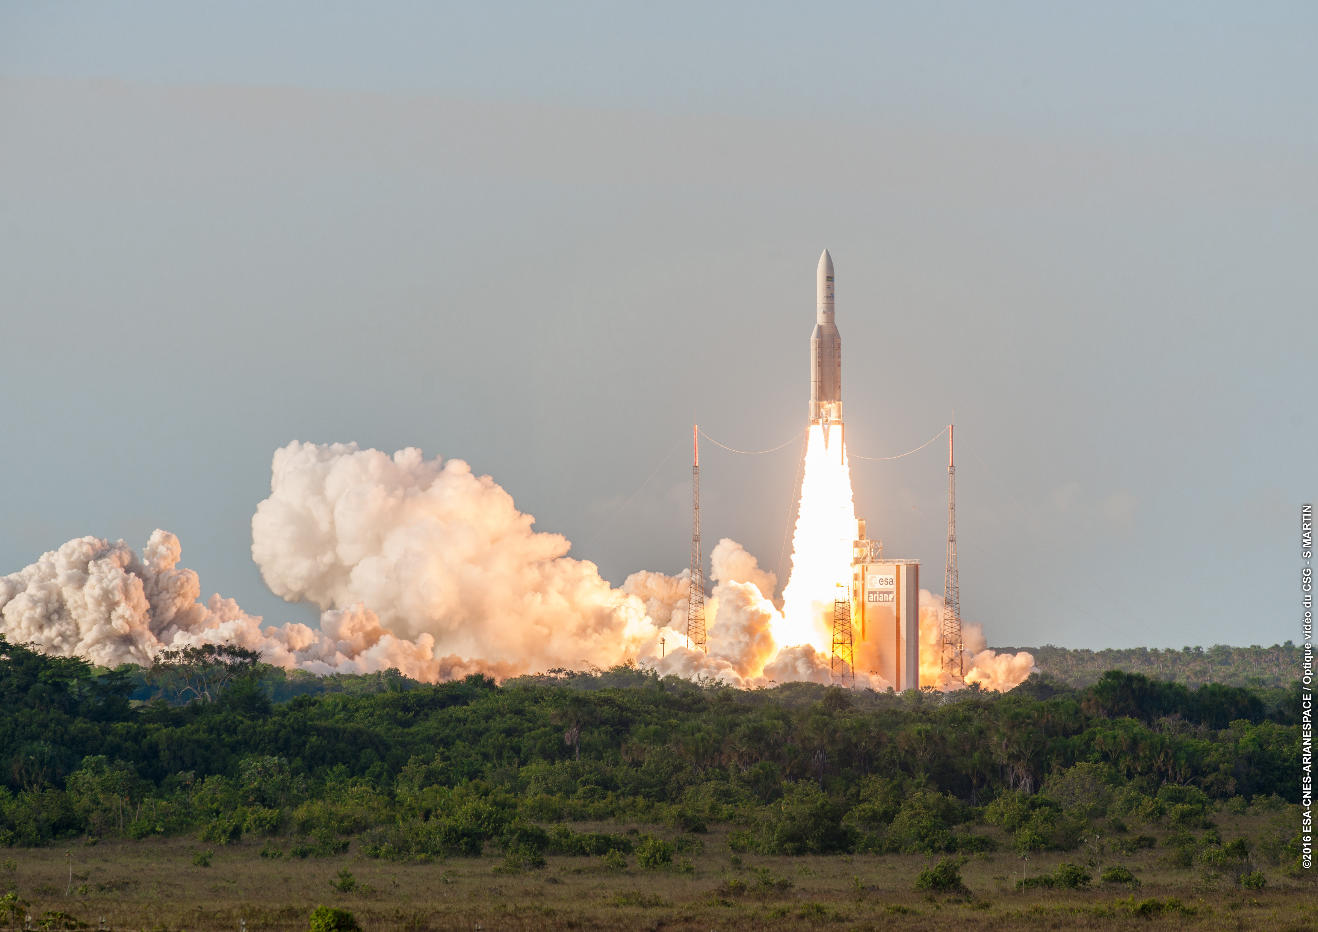 74th straight success for Ariane 5